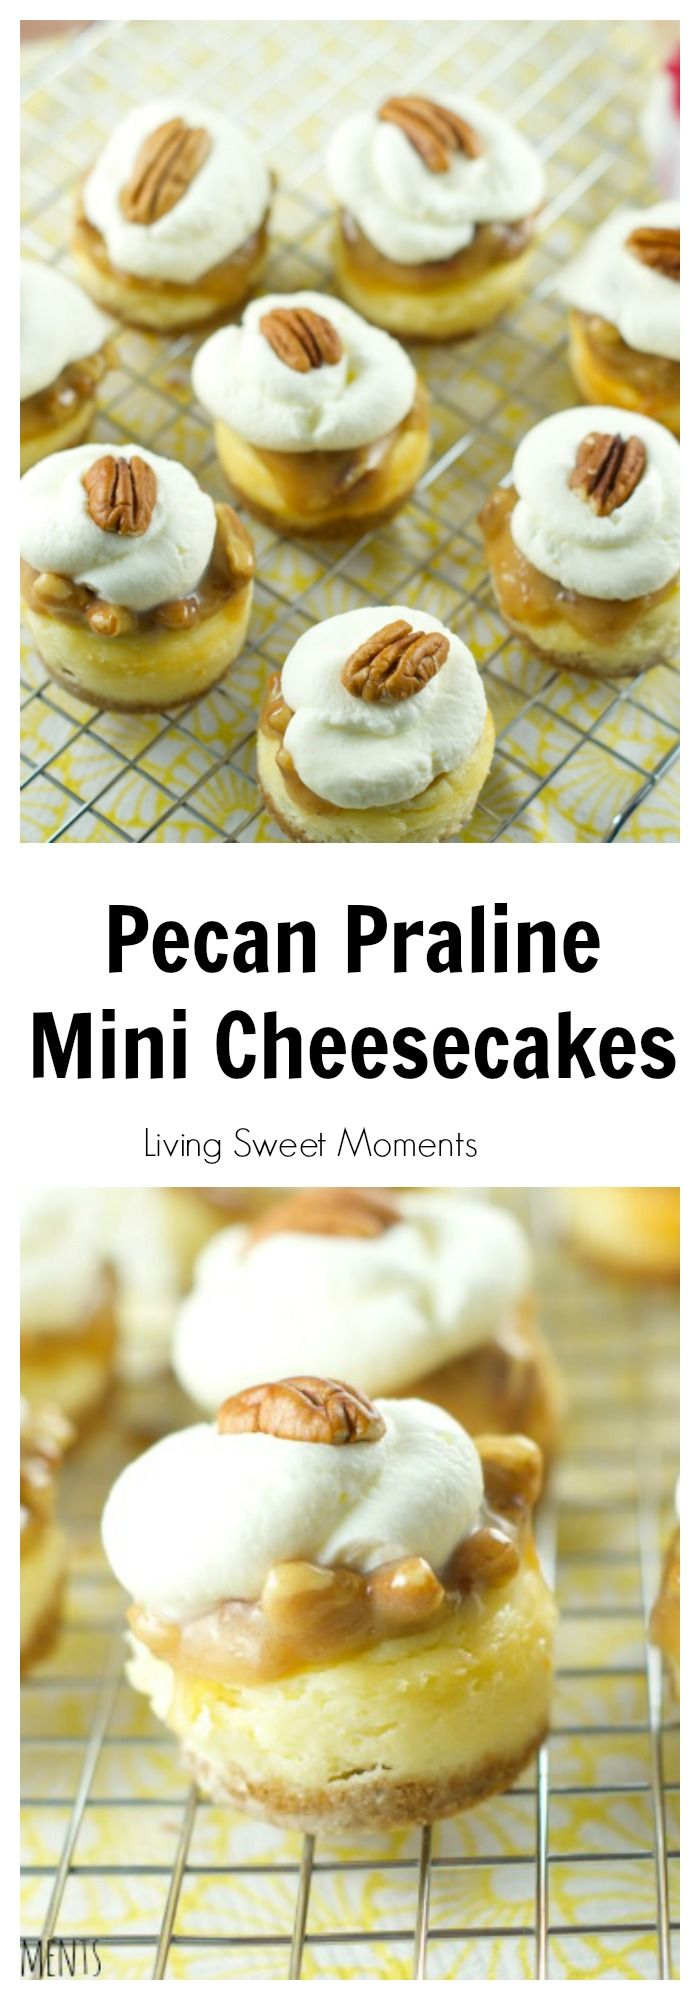 Pecan Praline Mini Cheesecakes - this is the best cheesecake recipe ever! these vanilla cheesecake bites are topped with pecan praline and chantilly cream. More cheesecake recipes at livingsweetmoments.com via @Livingsmoments